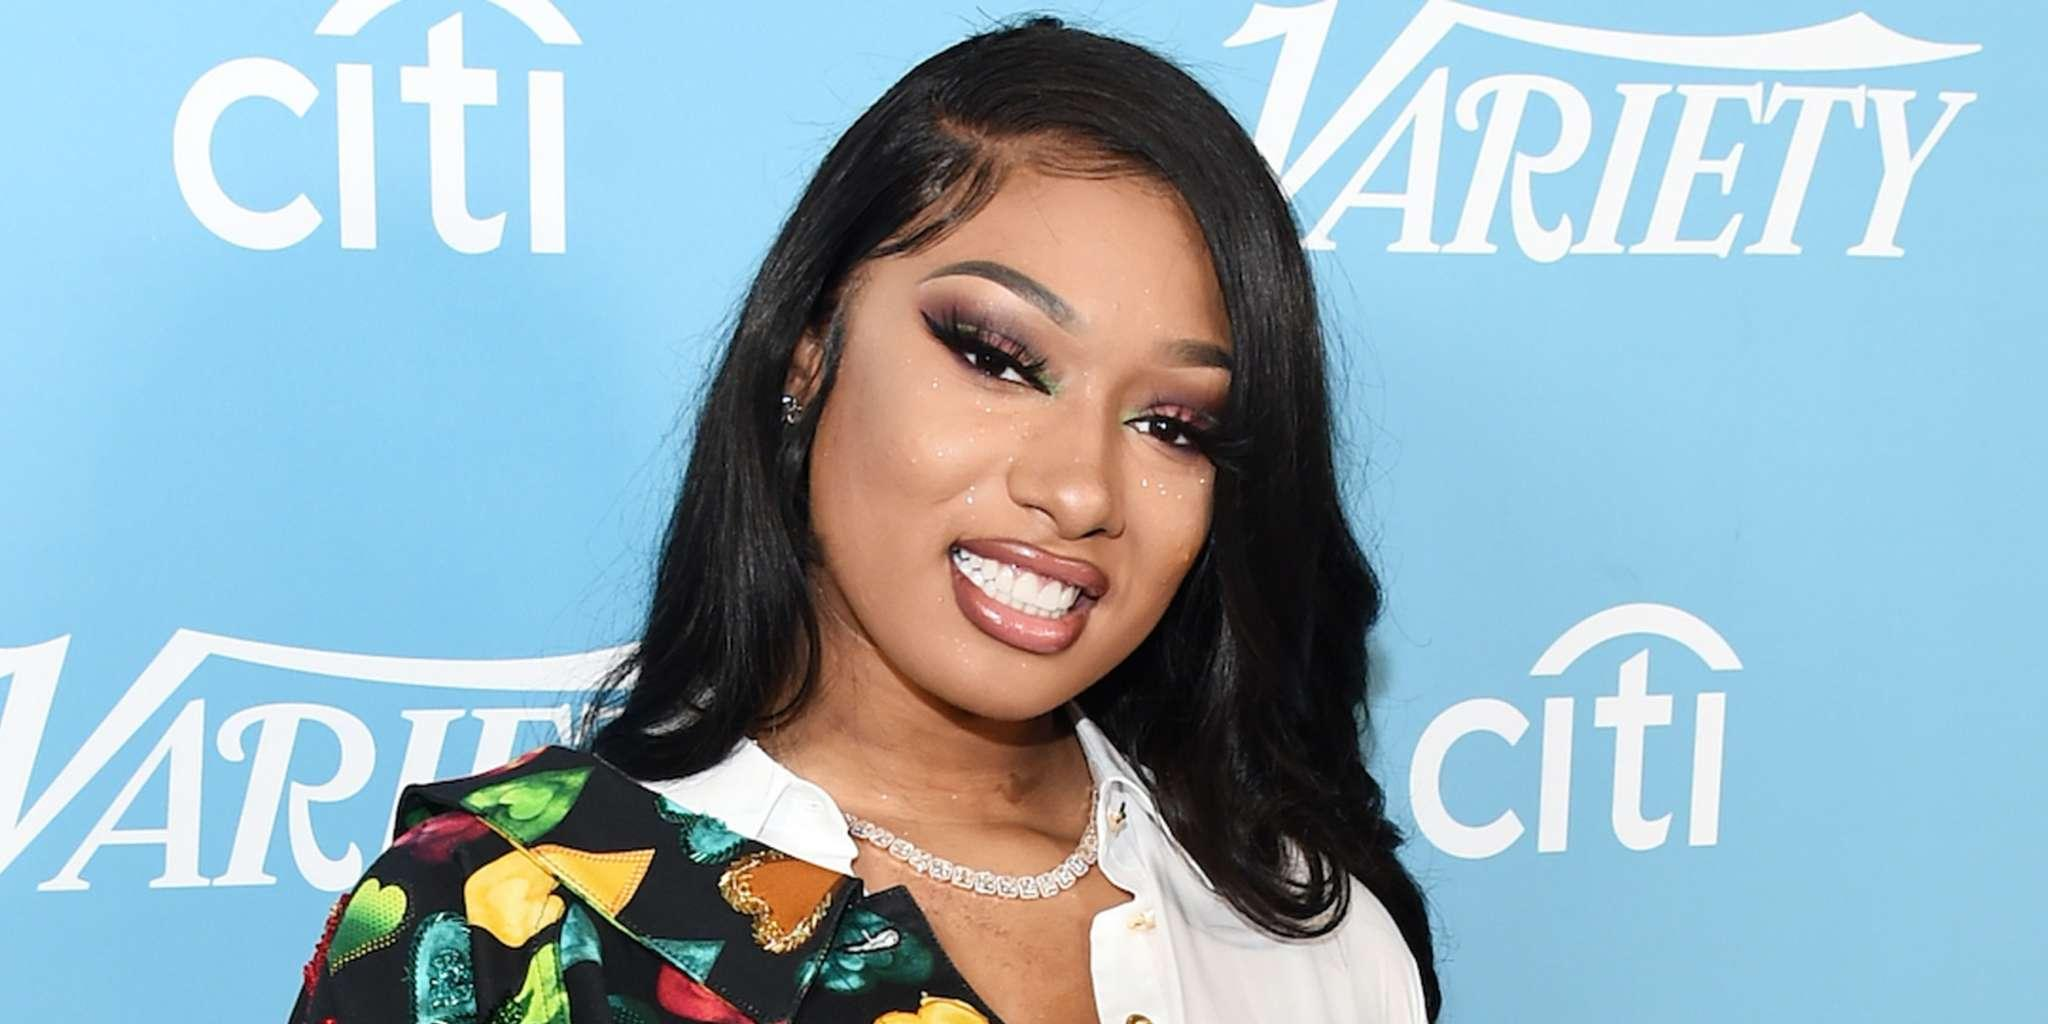 Megan Thee Stallion's SNL Performance Has Fans In Doubt - See The Video